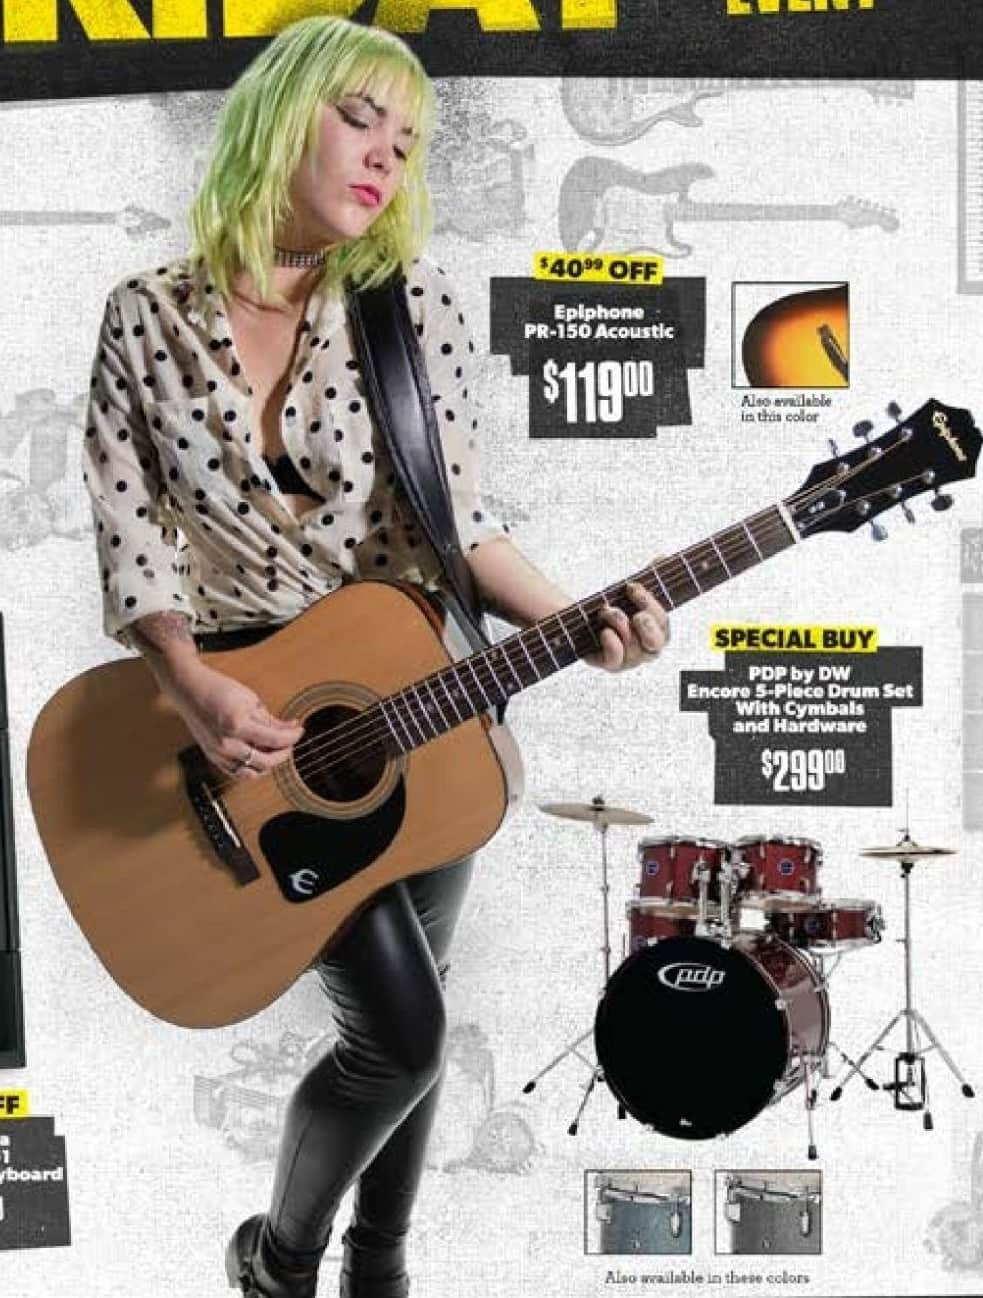 Guitar Center Black Friday: Epiphone PR-150 Acoustic Guitar Natural or Vintage Sunburst for $119.00